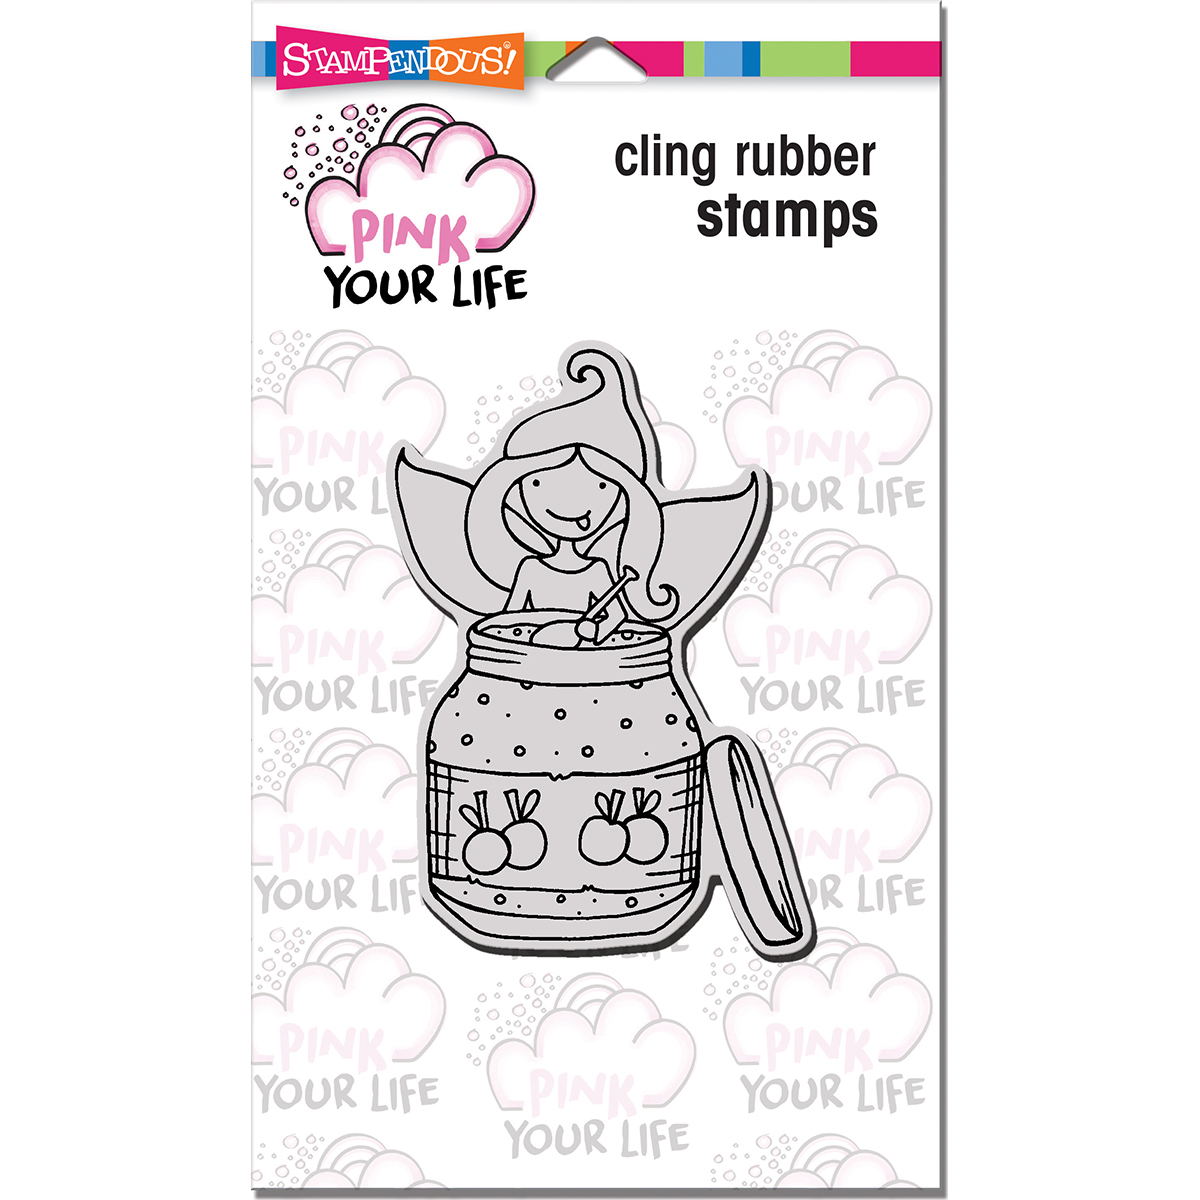 """Stampendous PLCP07 Stampendous Pink Your Life Cling Stamp 6.5""""X4.5"""" - Whisper Jam"""